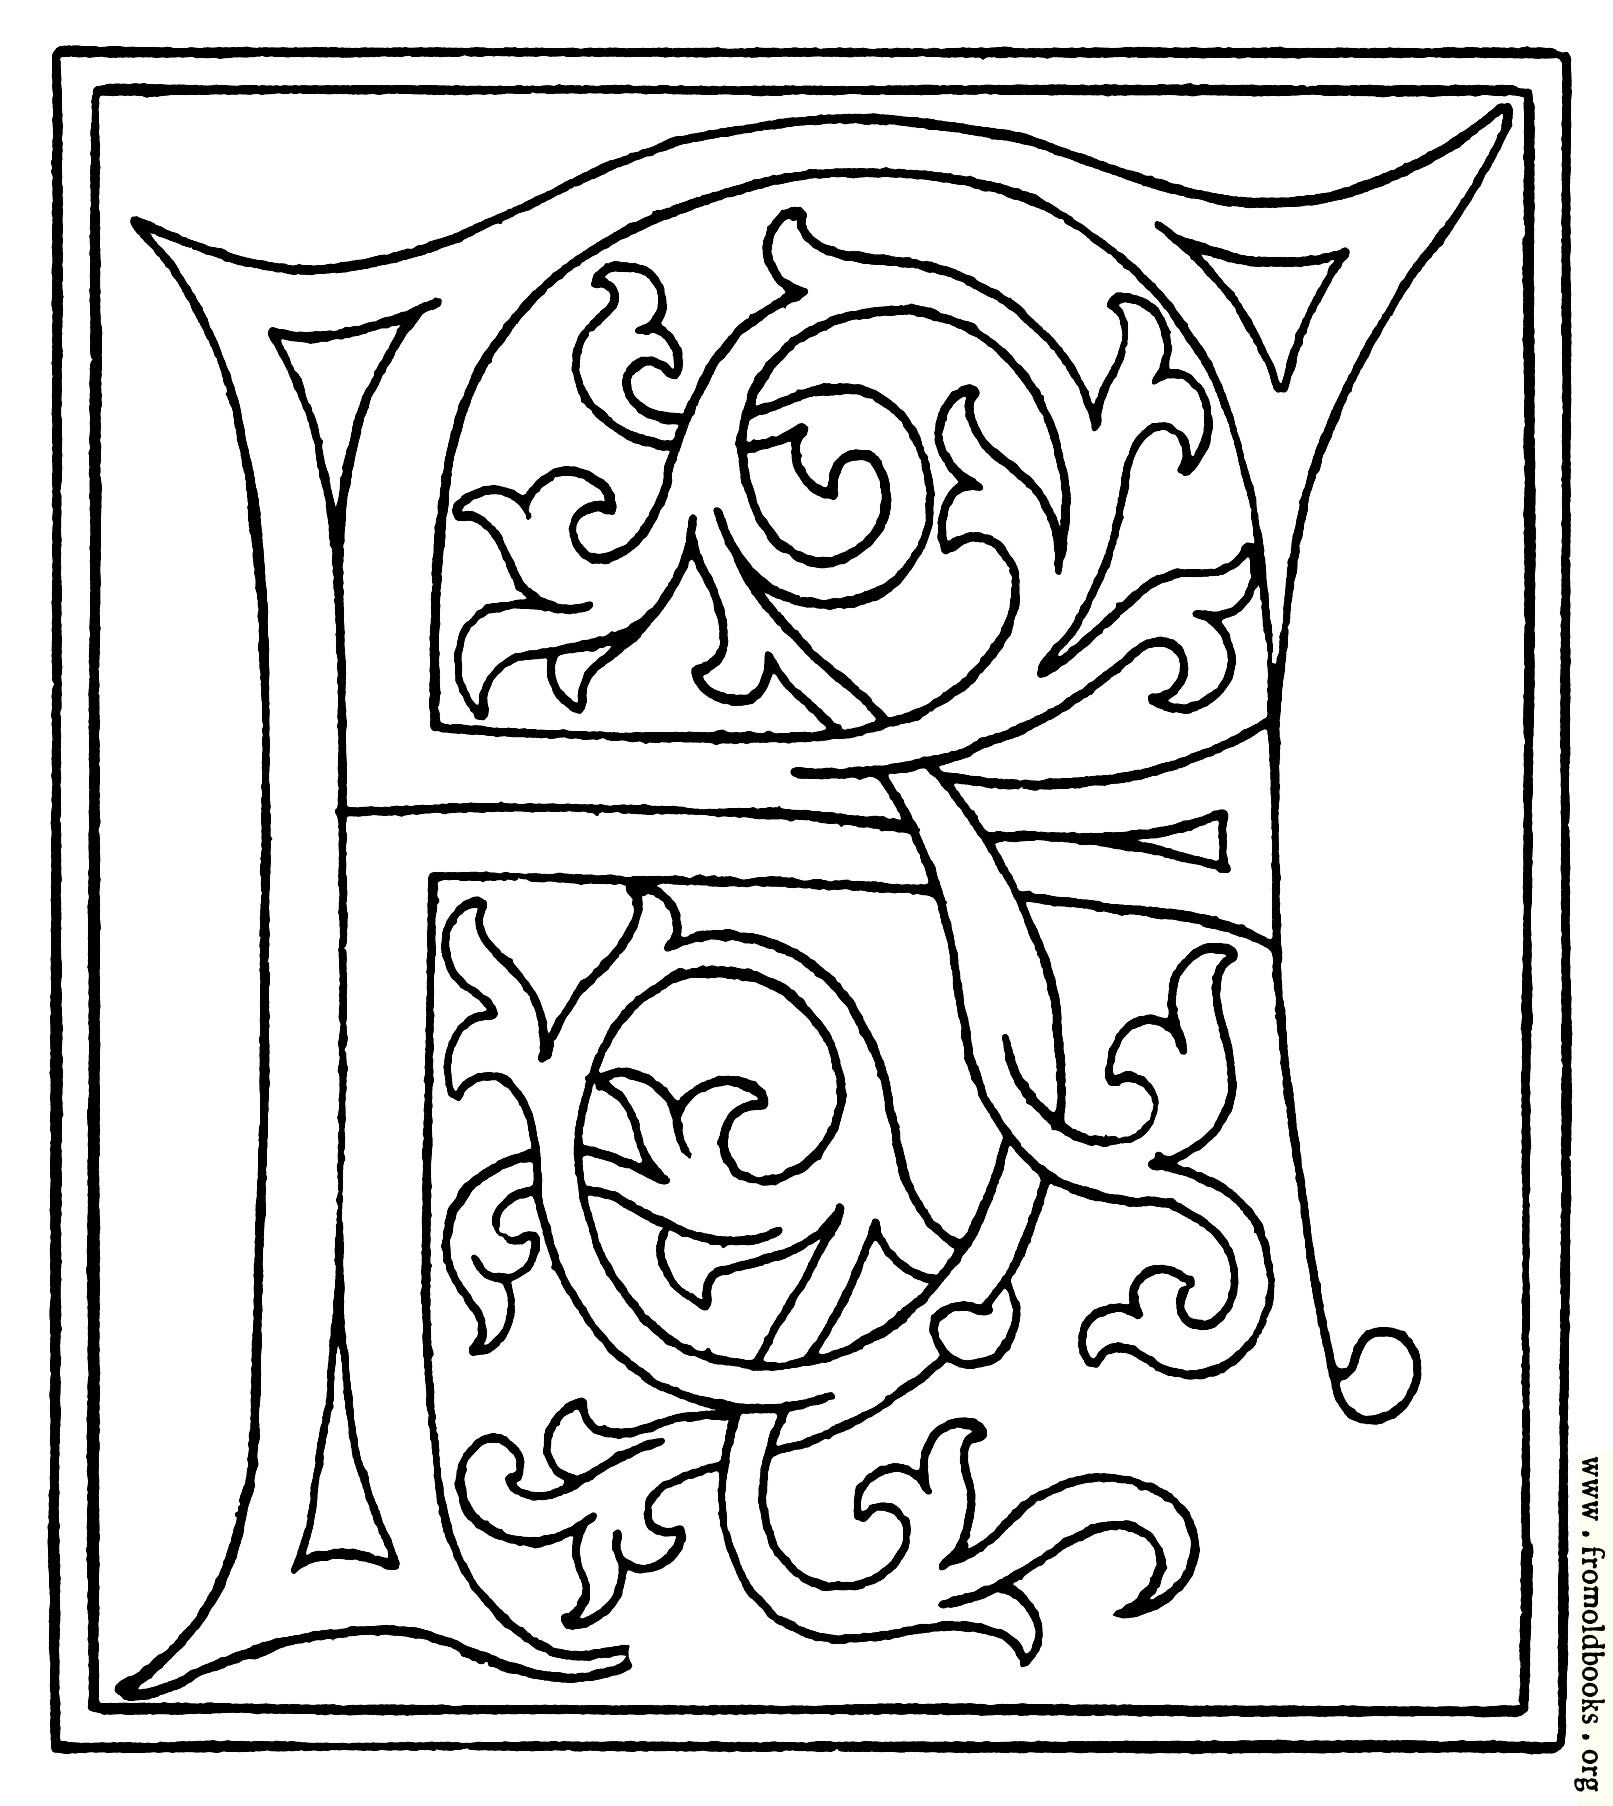 Clipart Initial Letter F From Late 15th Century Printed Book